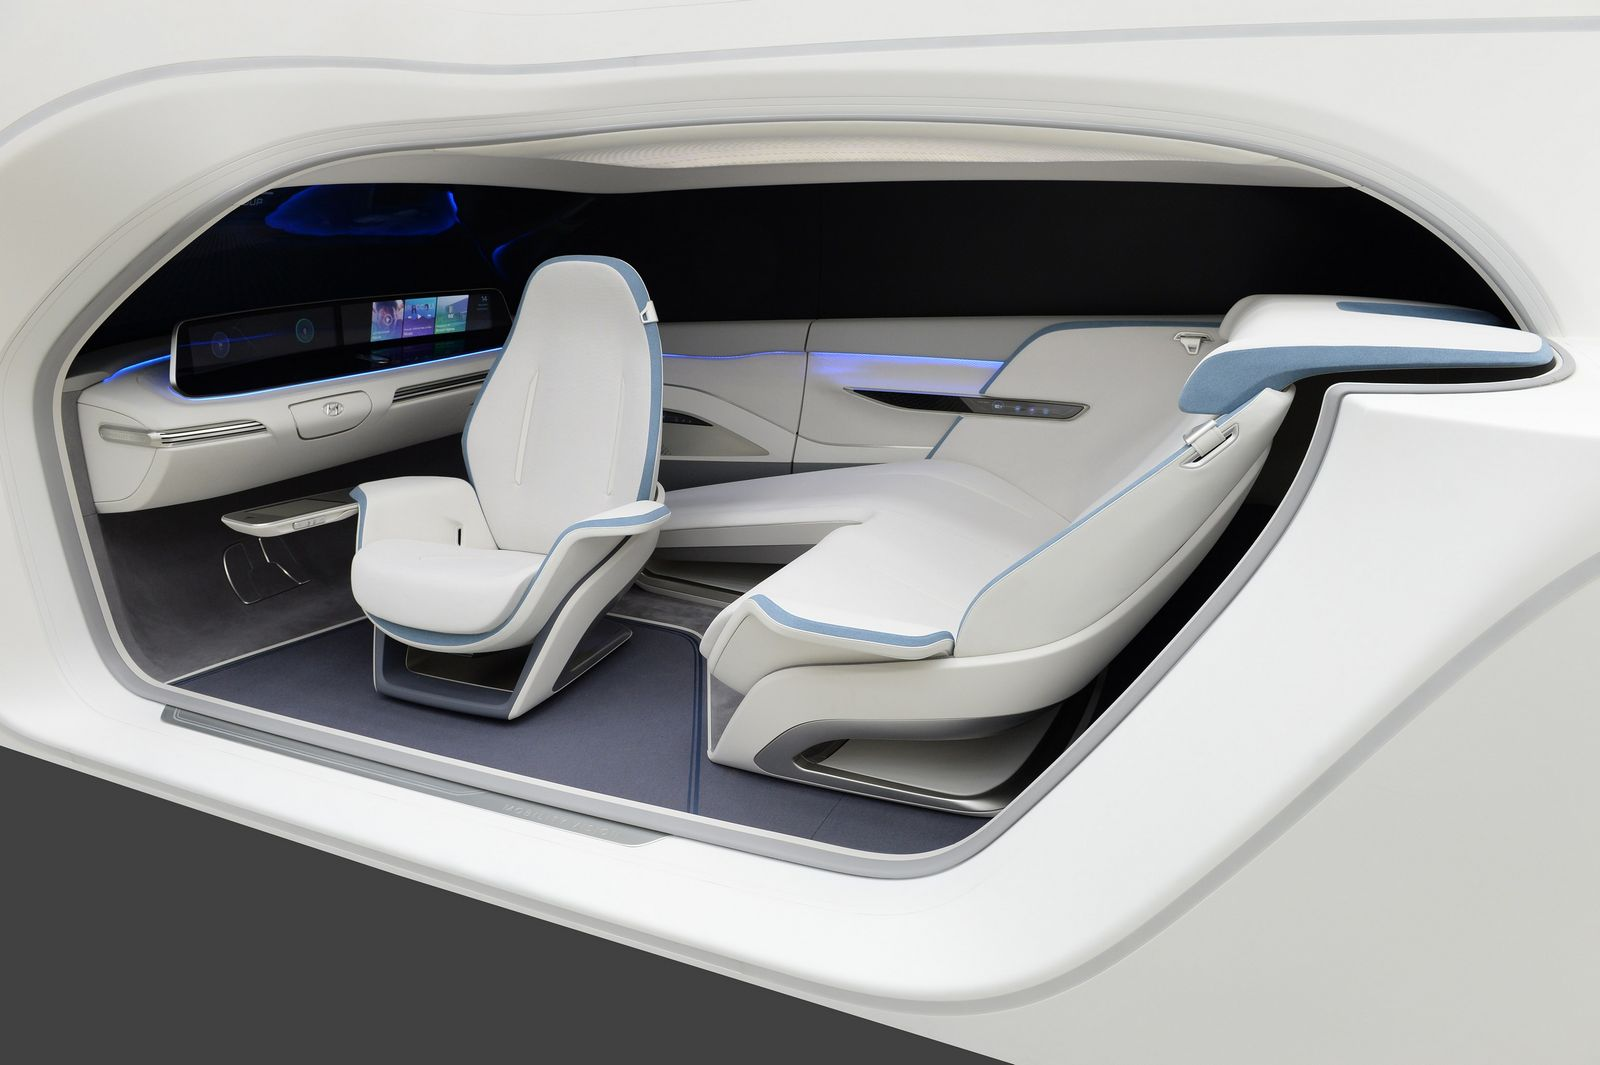 HYUNDAI MOTOR DEMONSTRATES 'MOBILITY VISION' WITH HYPER-CONNECTED CAR AND SMART HOUSE